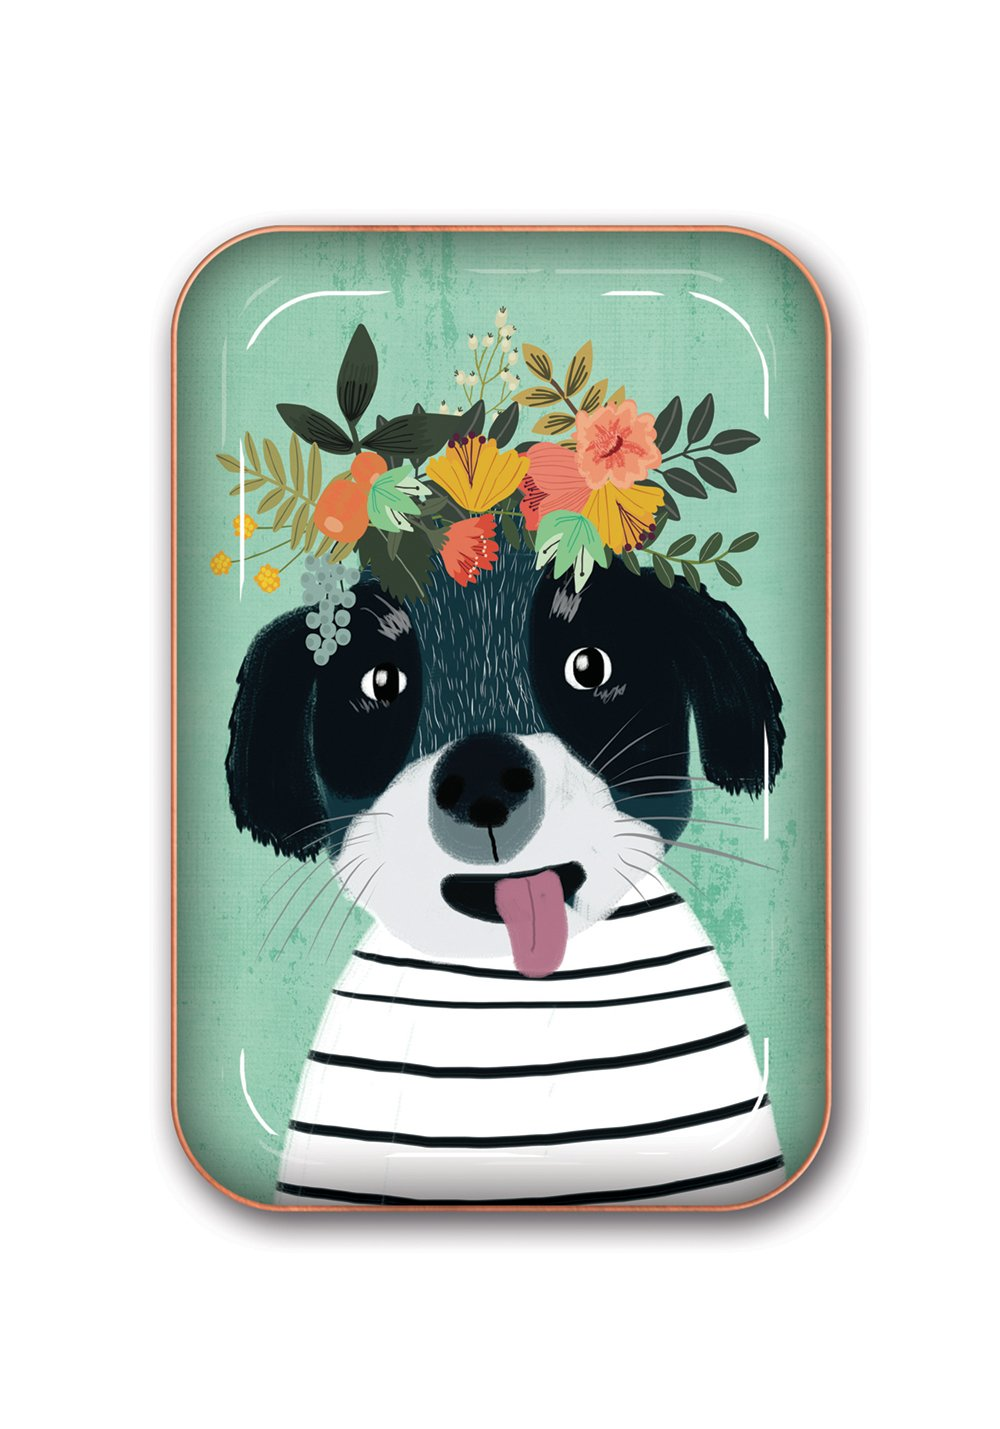 La Boutique Flower Dog Metal Catchall Tray by Studio Oh!